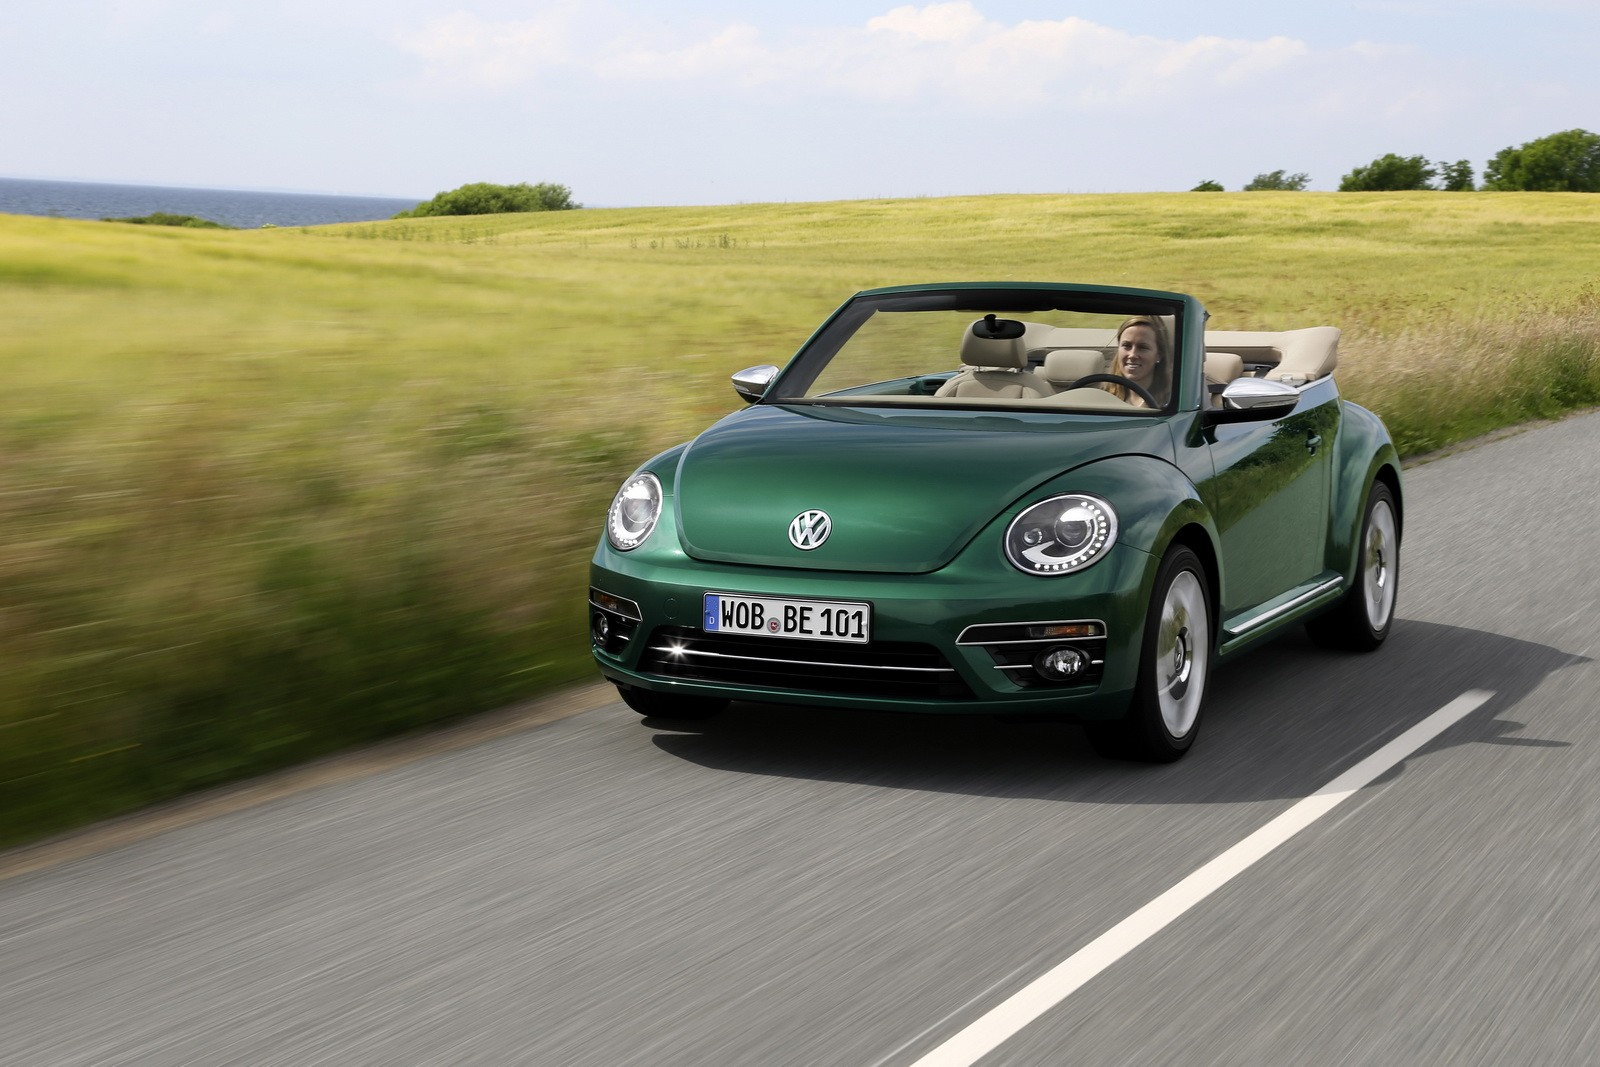 VW Beetle SUV Coming in 2019 with Hybrid and Allroad Versions ...